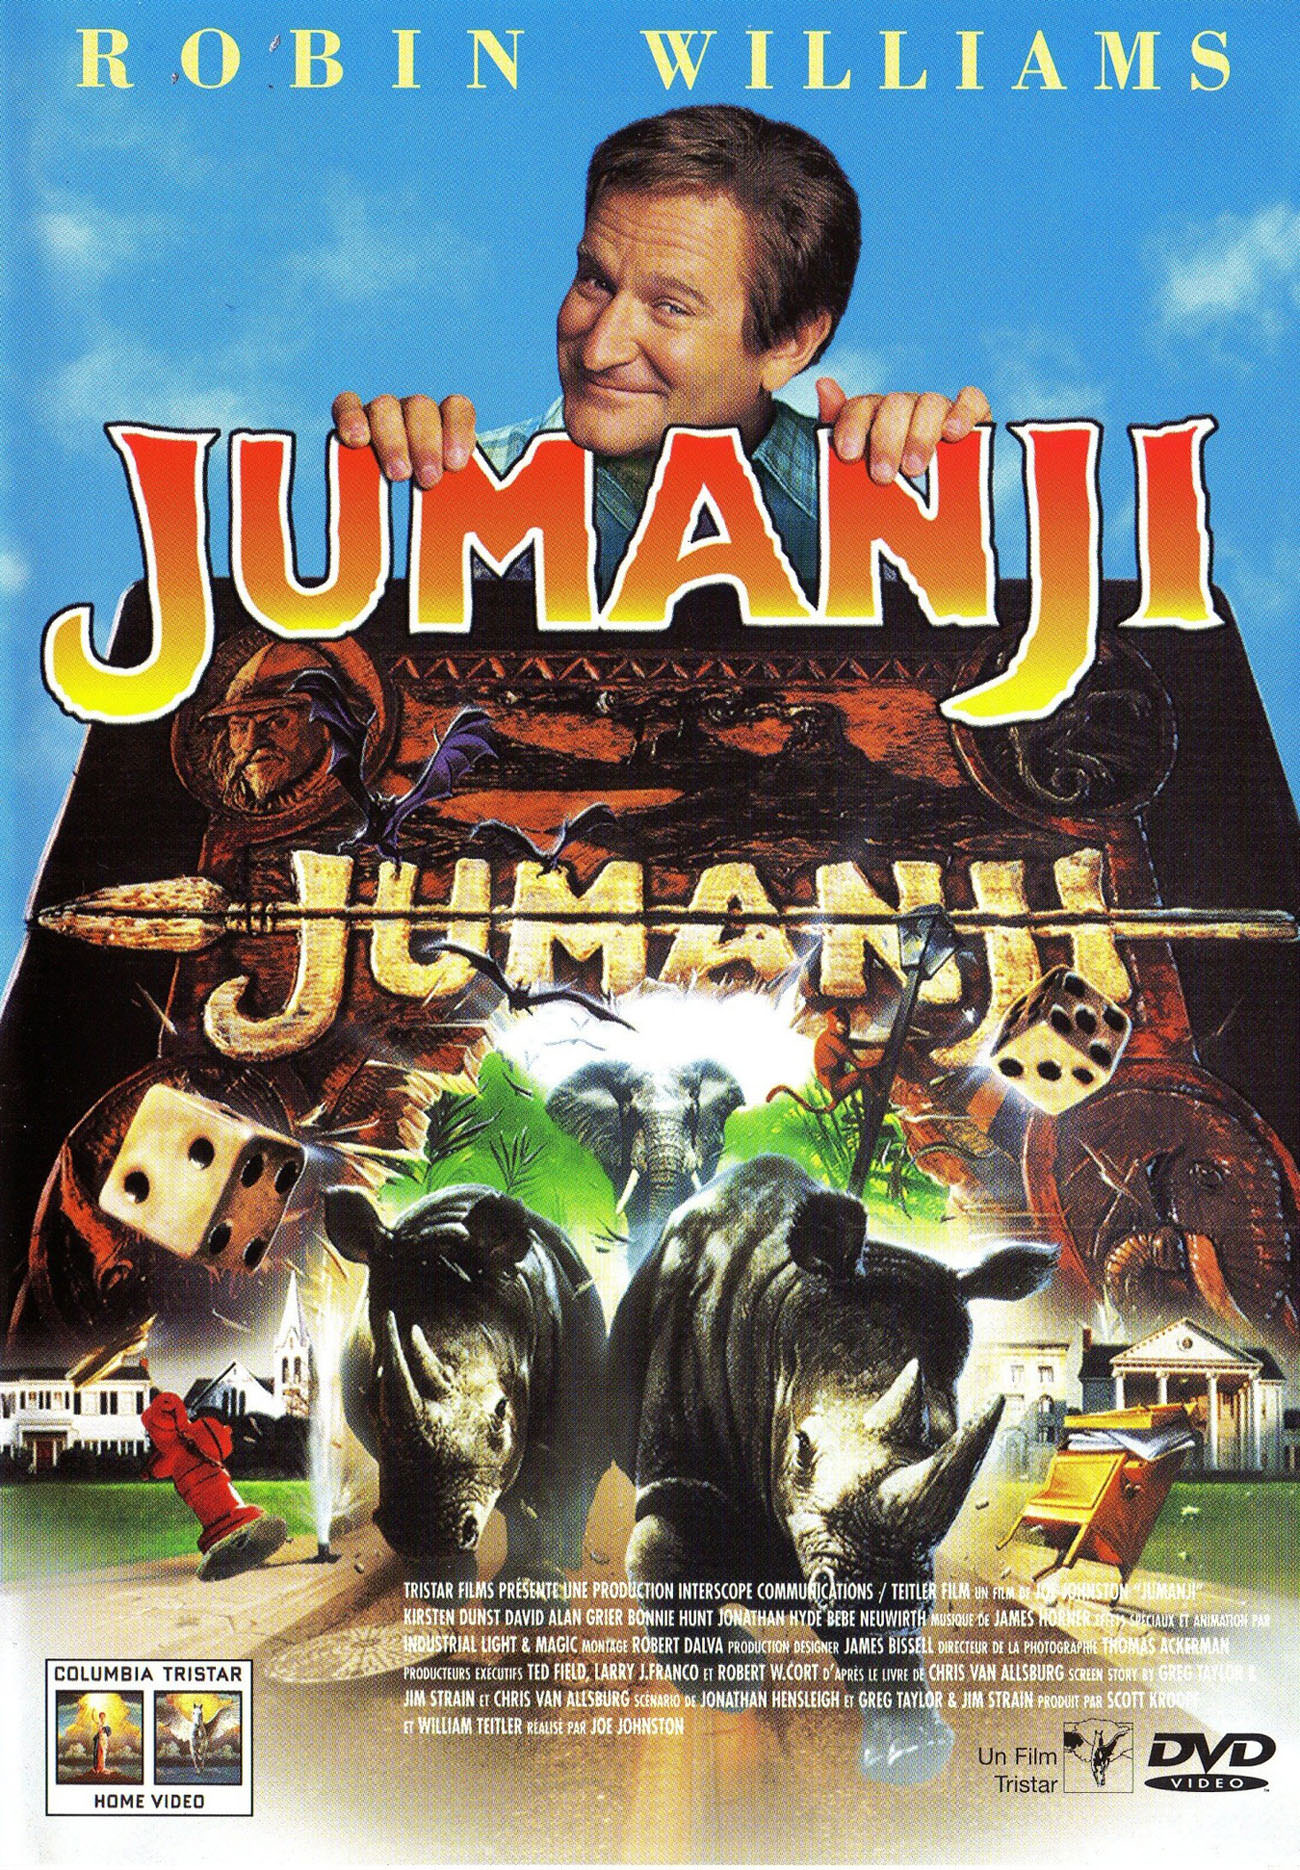 Jumanji johnston